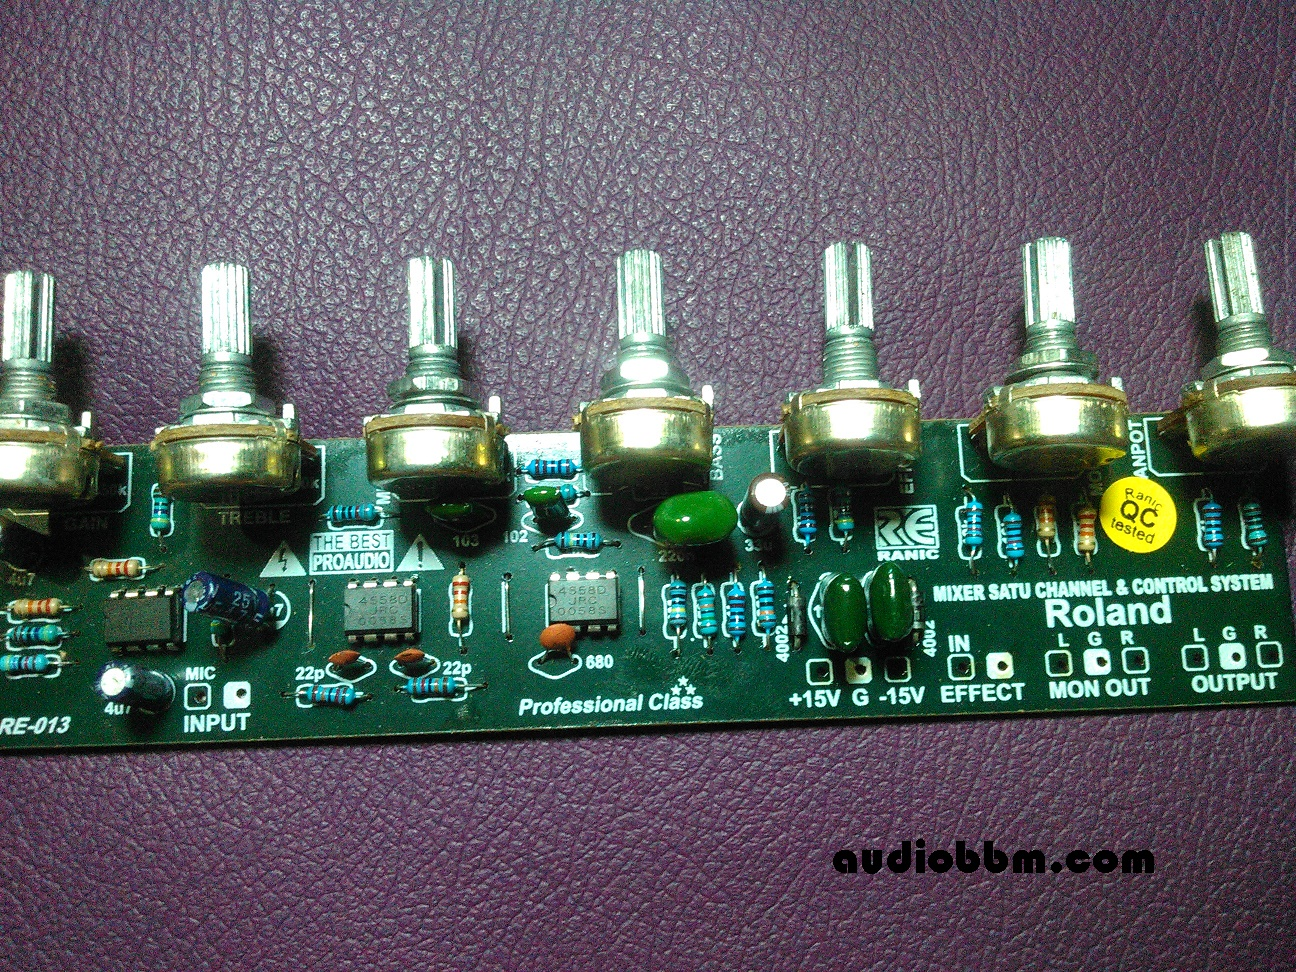 Pre Amp Tone Control Sub Filter Crossover Lets Do It Equalizer 5 Chanel Using Ic Tl074 Tl084 Ranic013